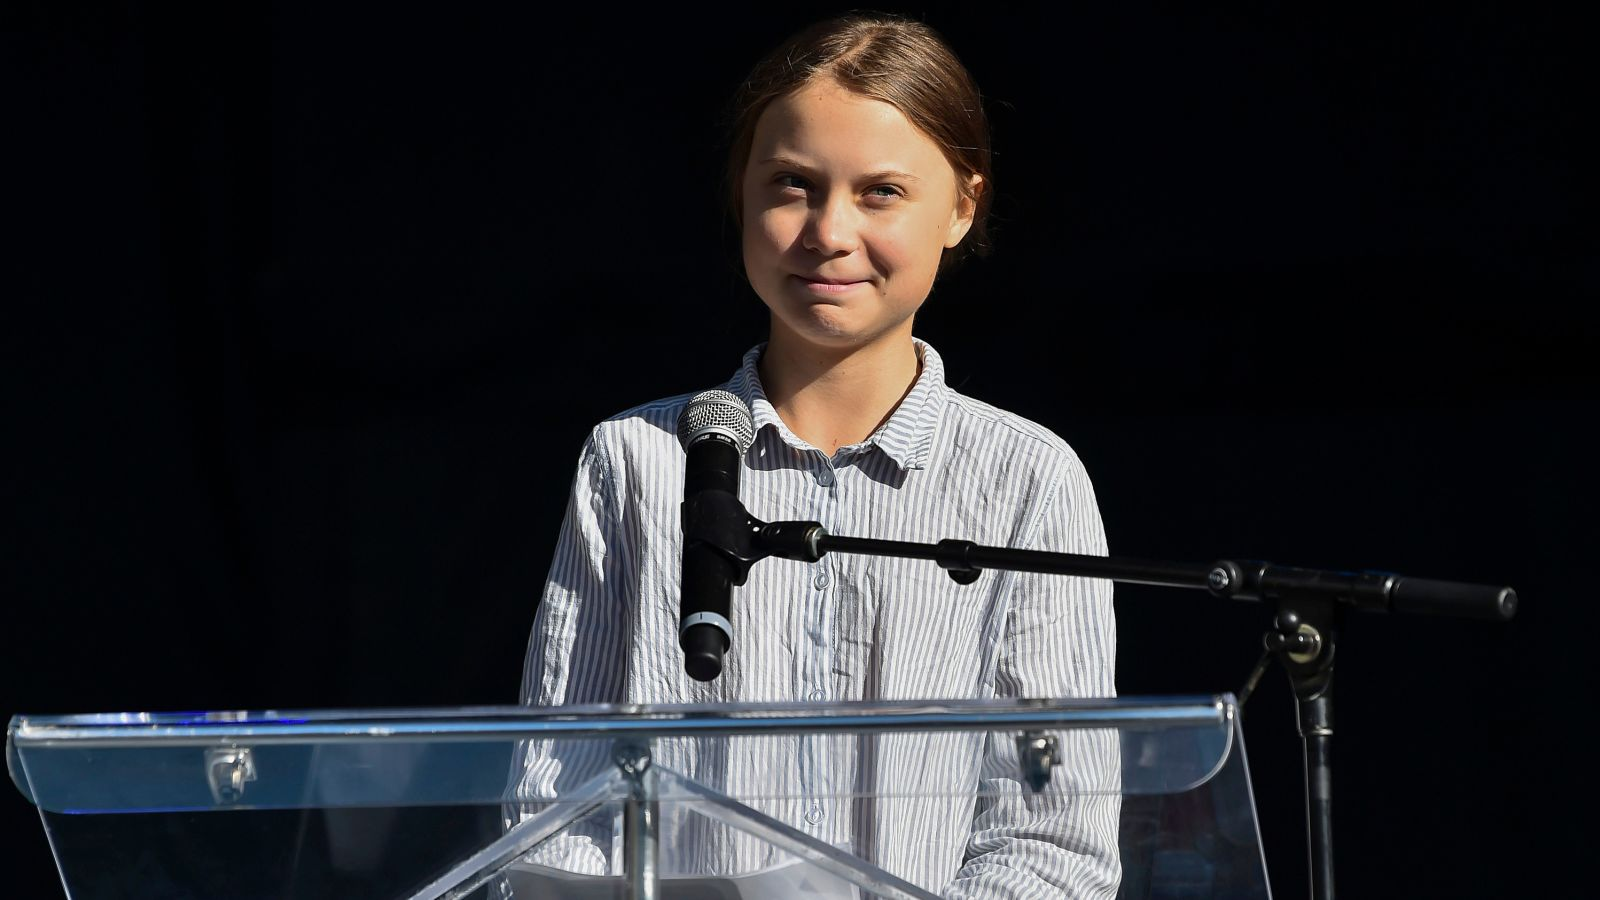 University of Iowa Faculty Told Not to Promote Greta Thunberg Visit on School Social Media